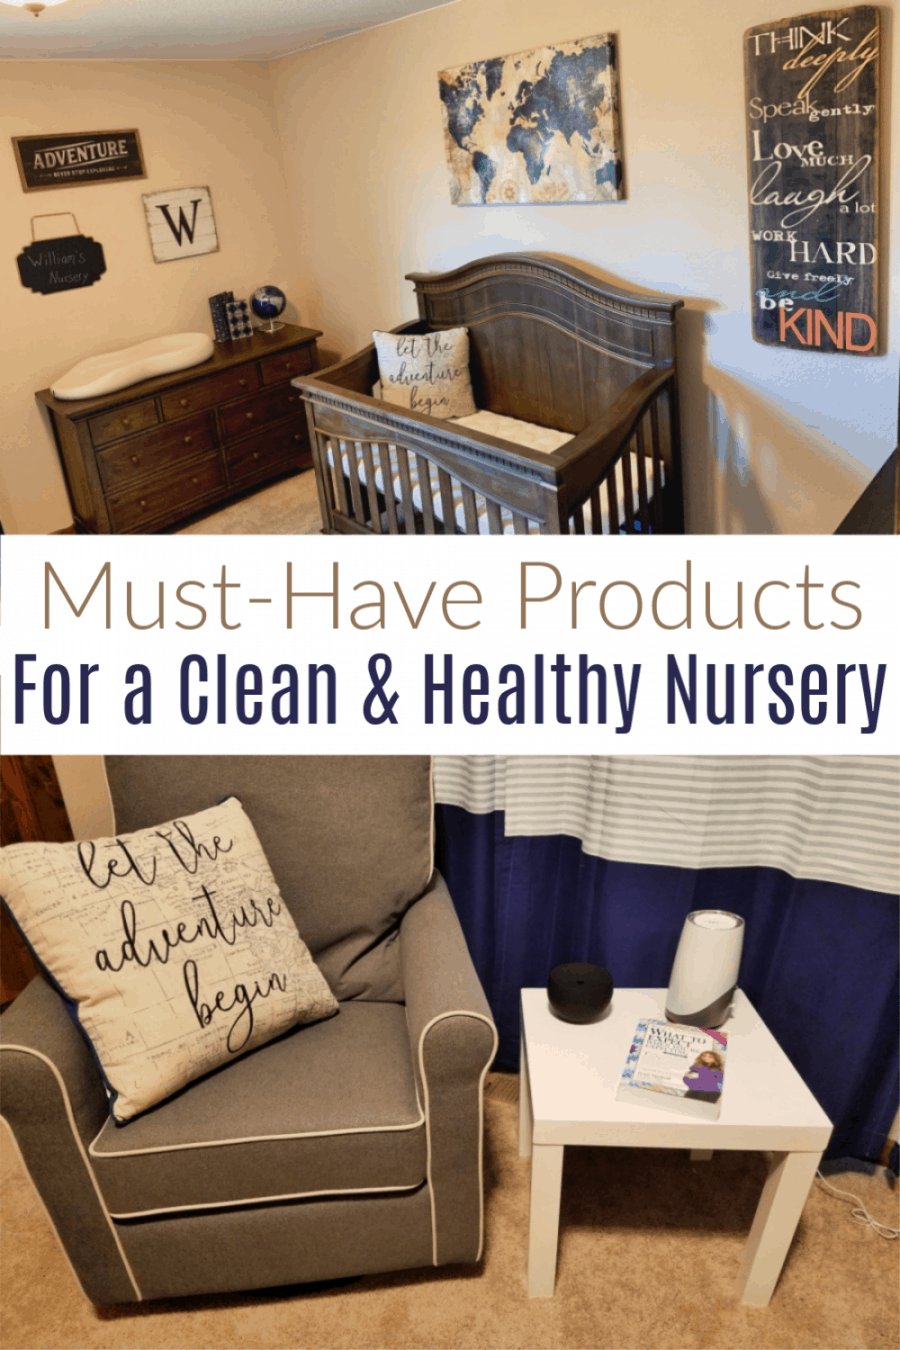 Must have products for a clean and healthy nursery